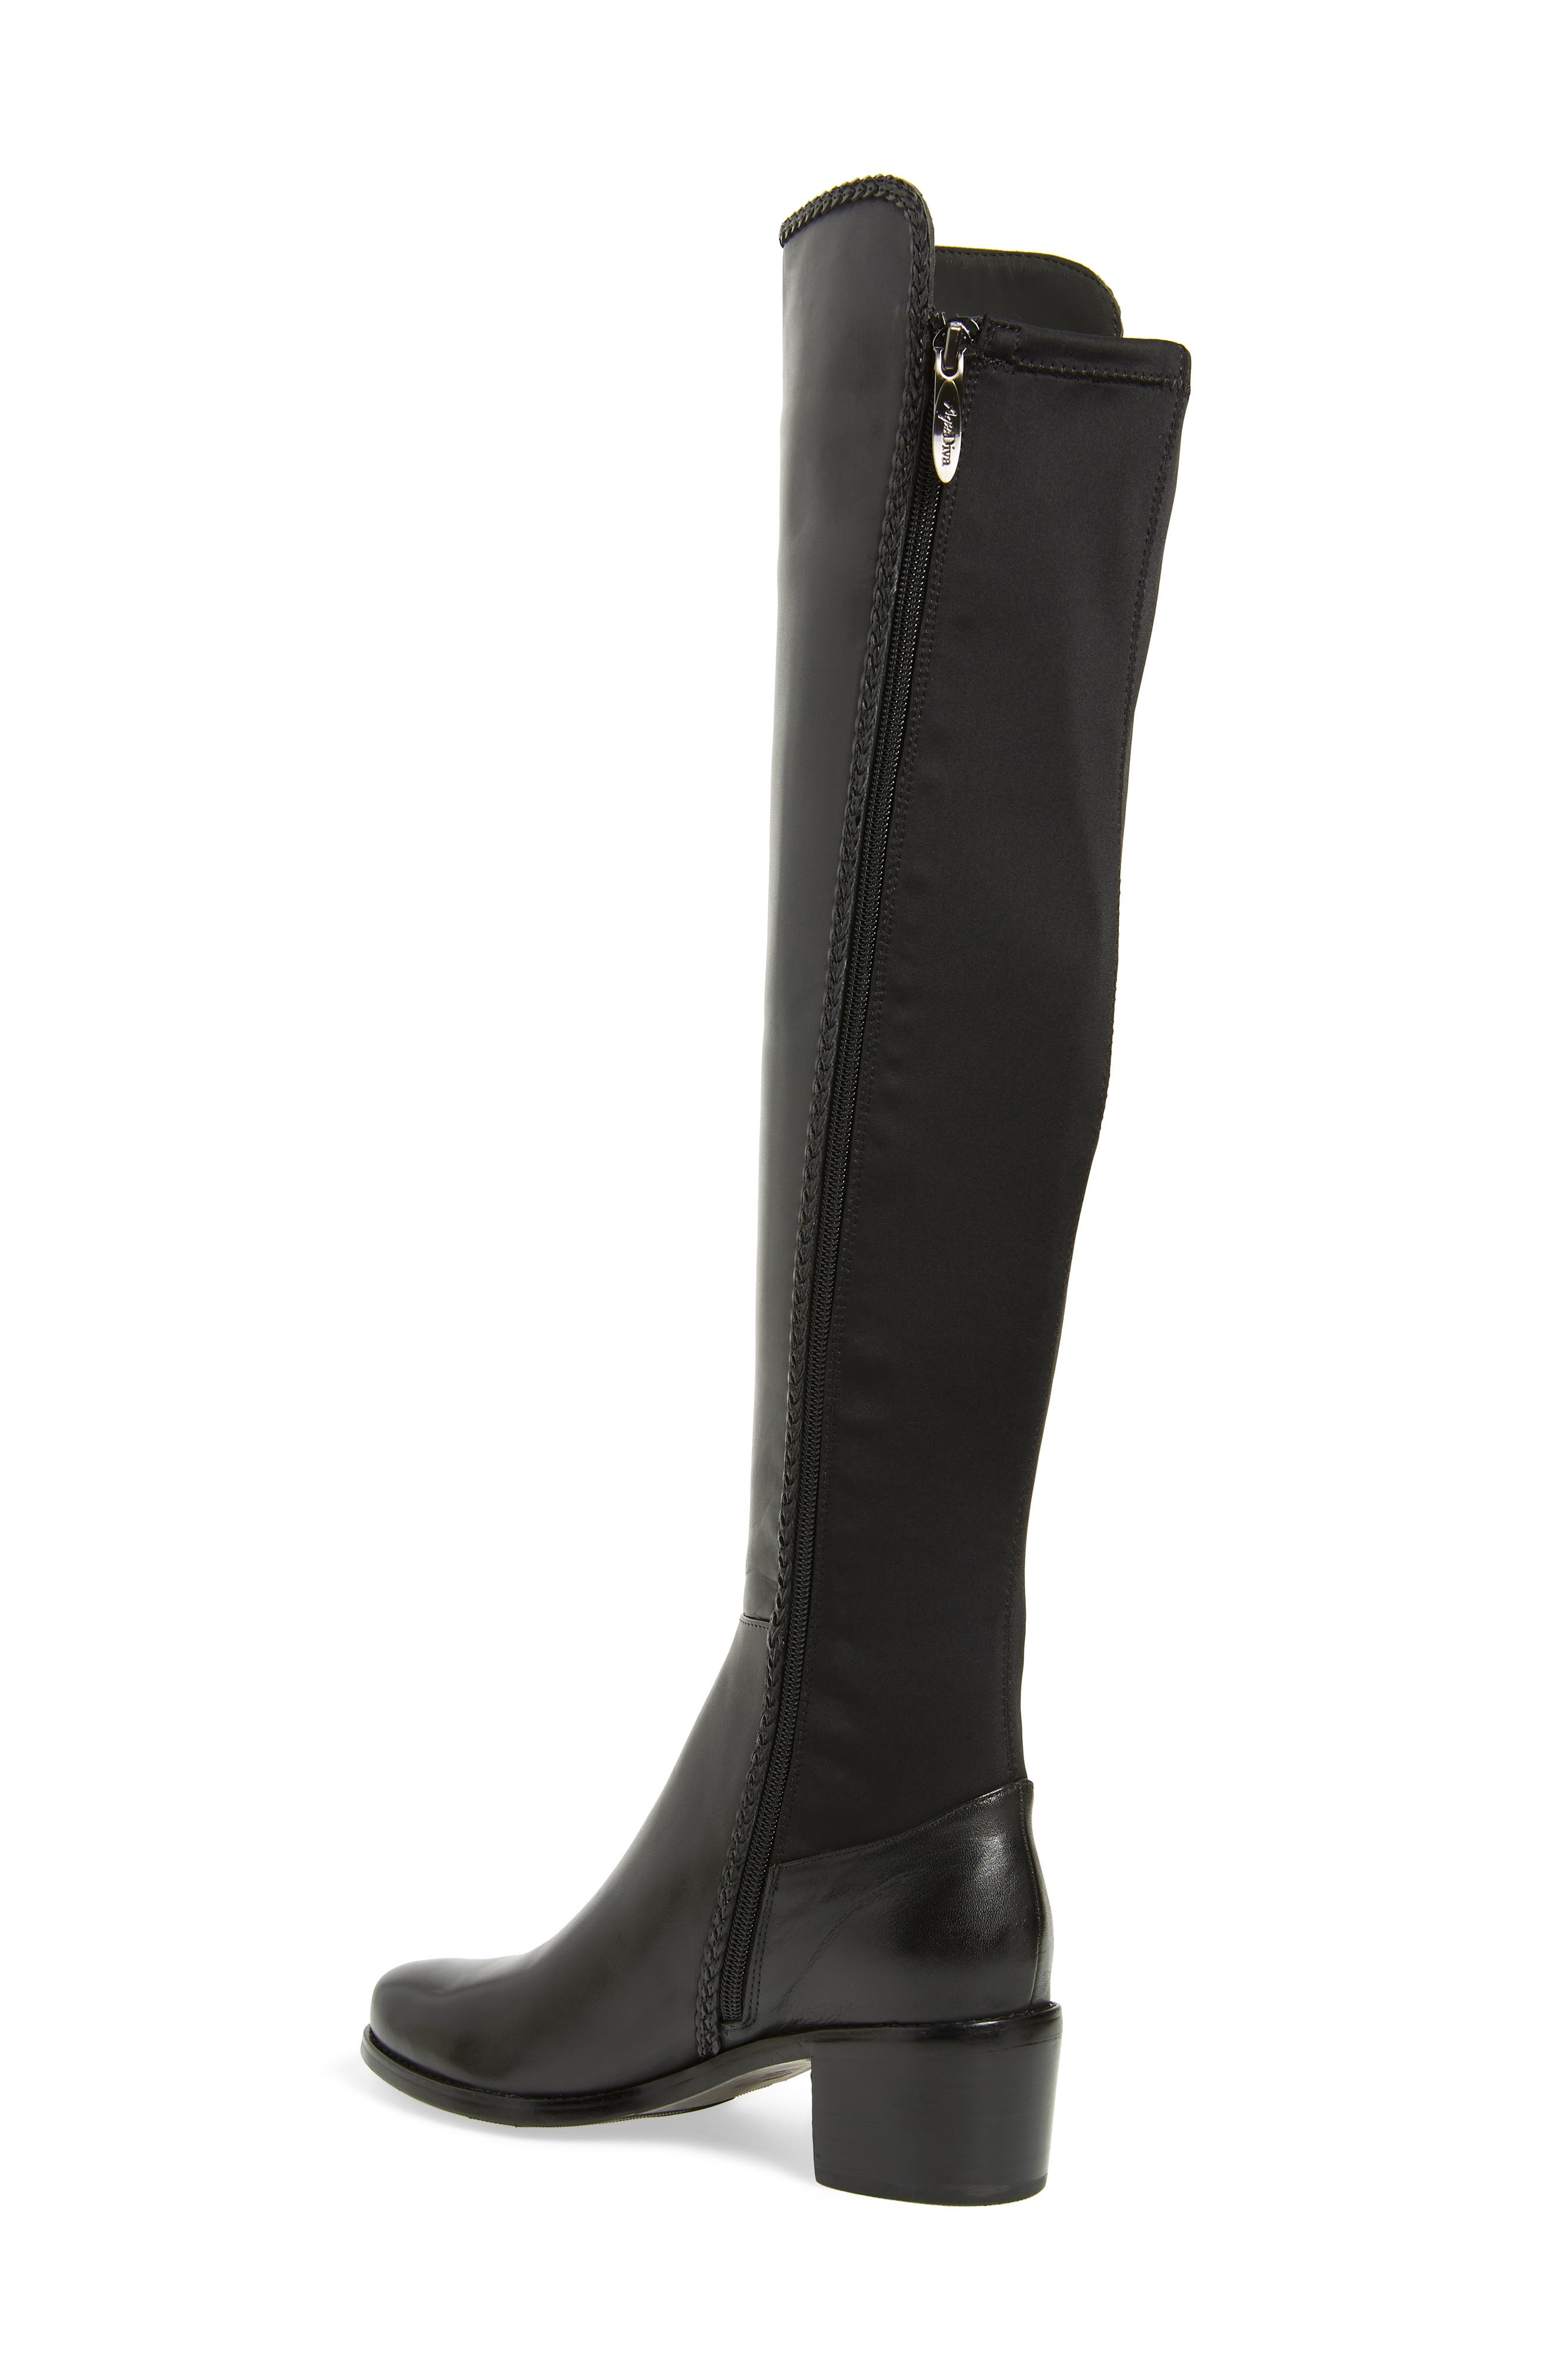 Florence Waterproof Over the Knee Boot,                             Alternate thumbnail 2, color,                             BLACK LEATHER